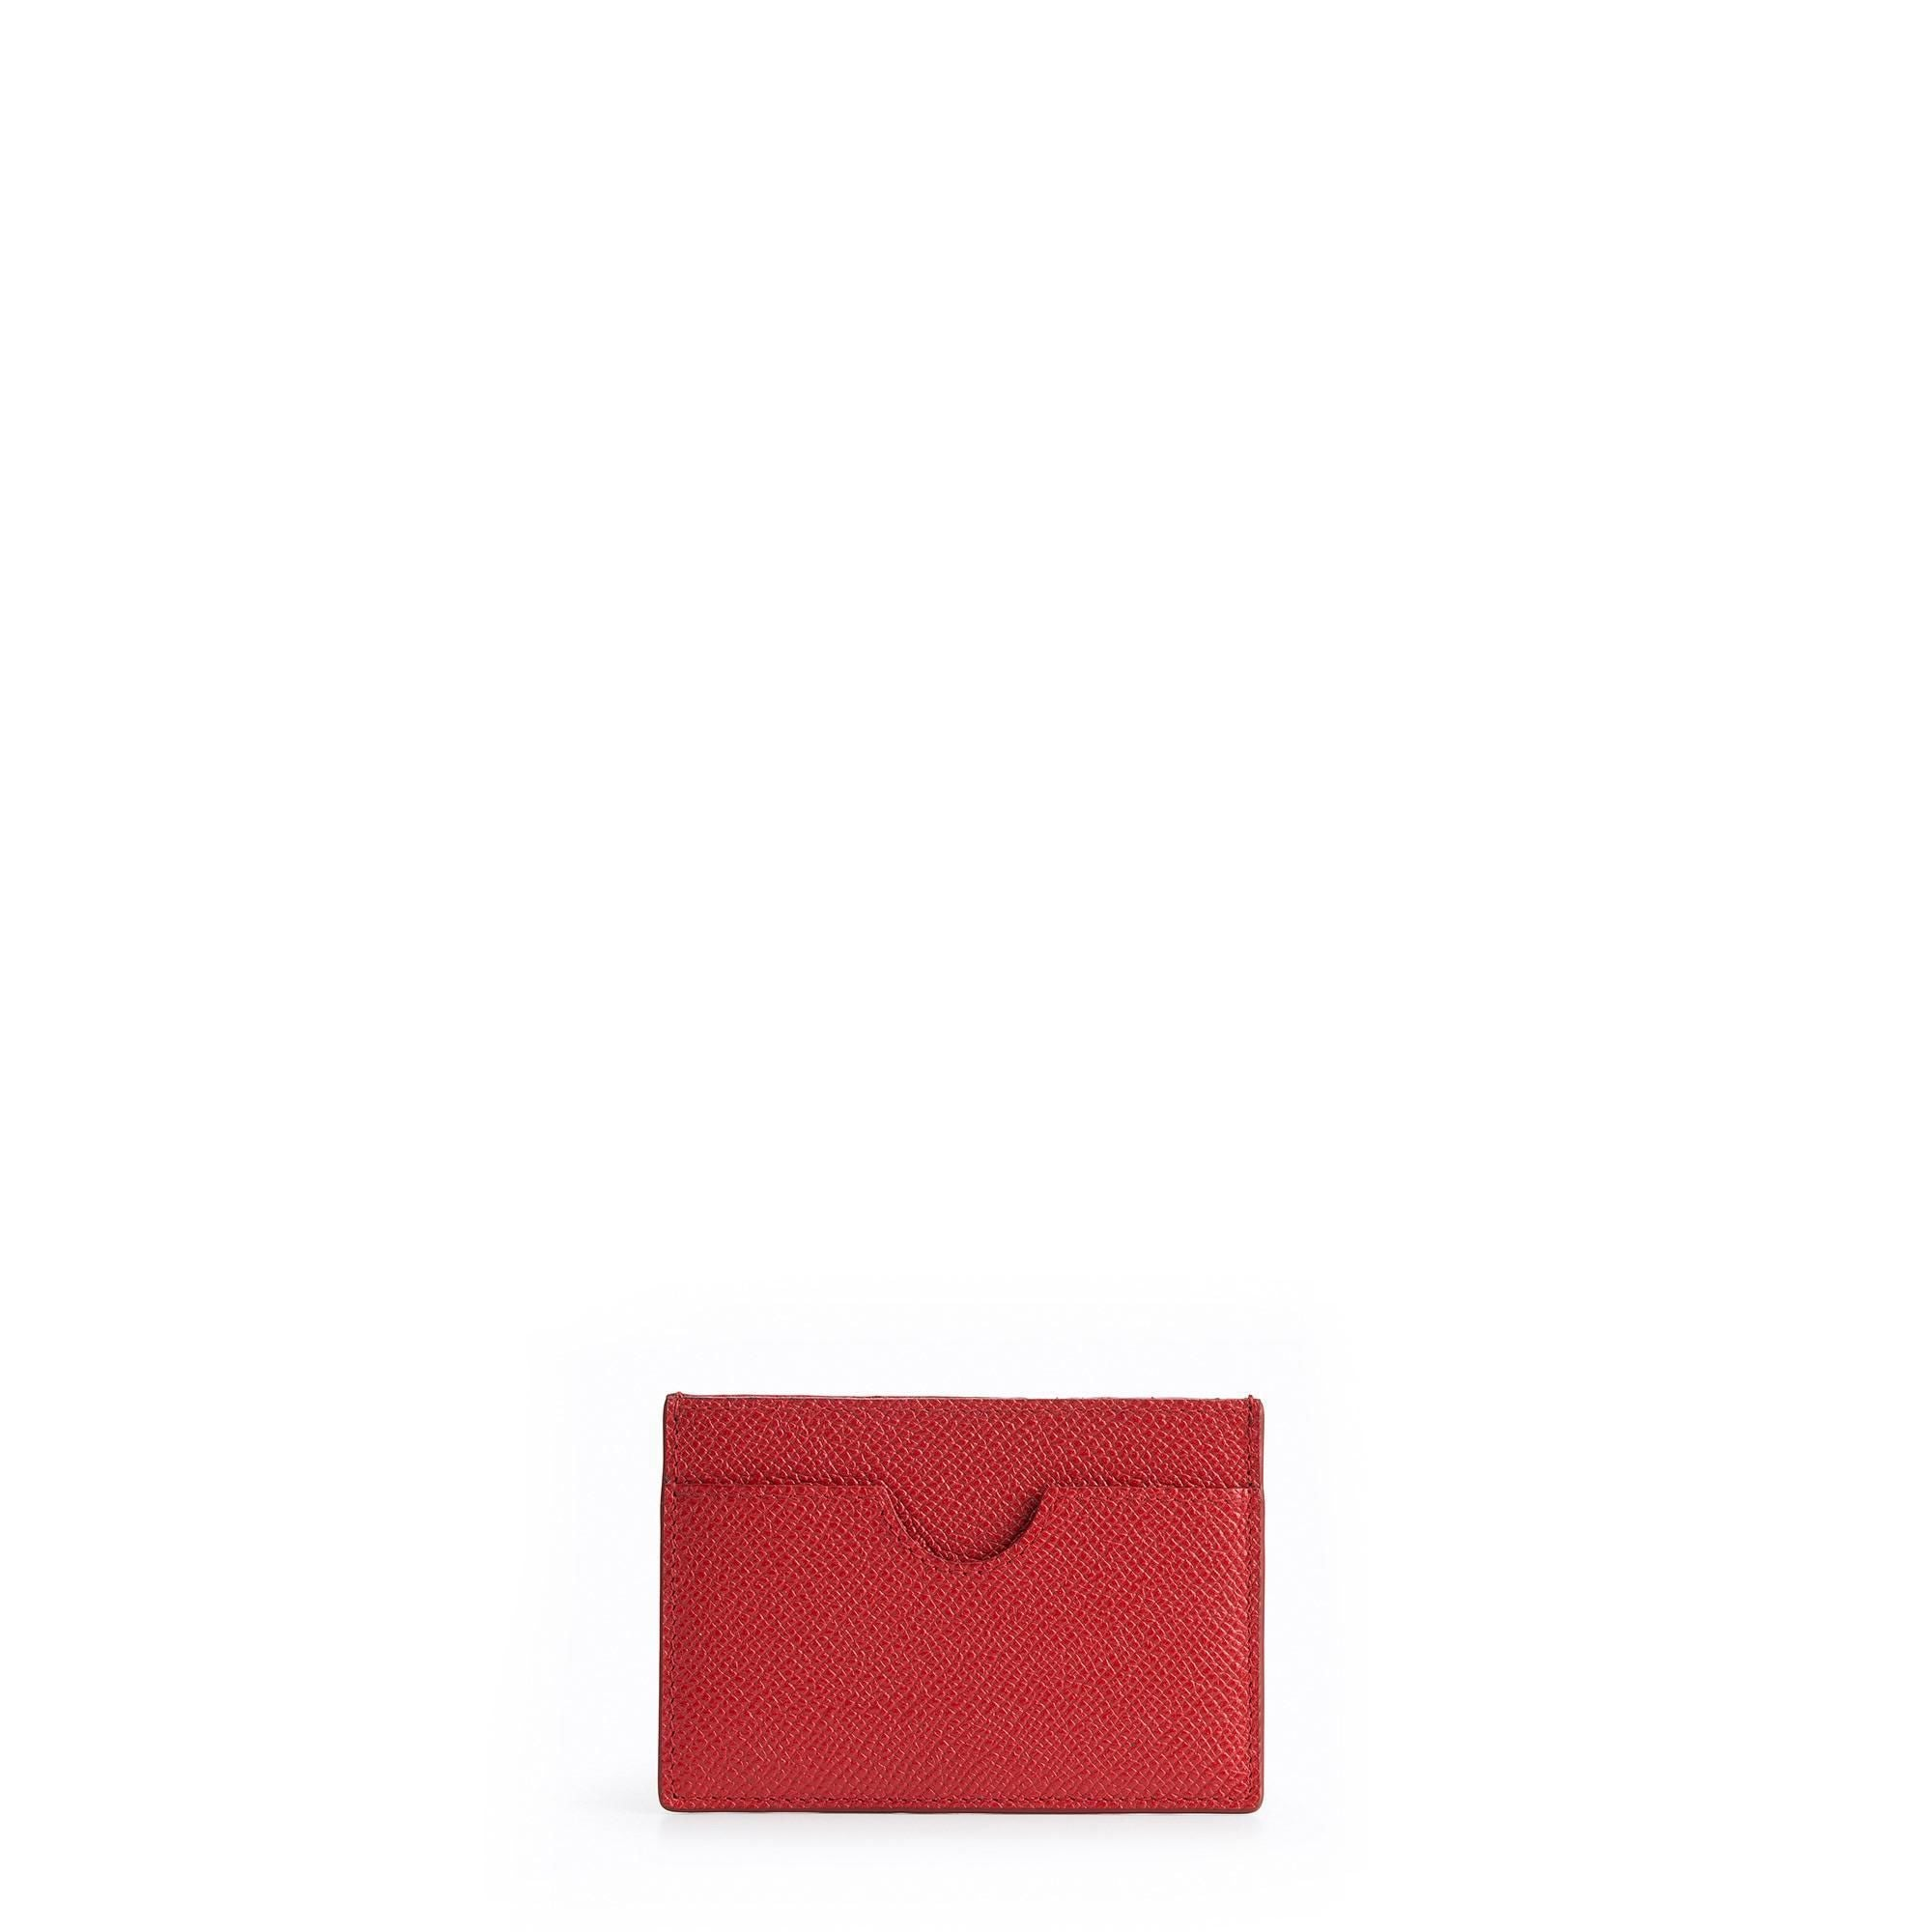 Card holders leather accessories the cambridge satchel company the card case red saffiano product reheart Choice Image